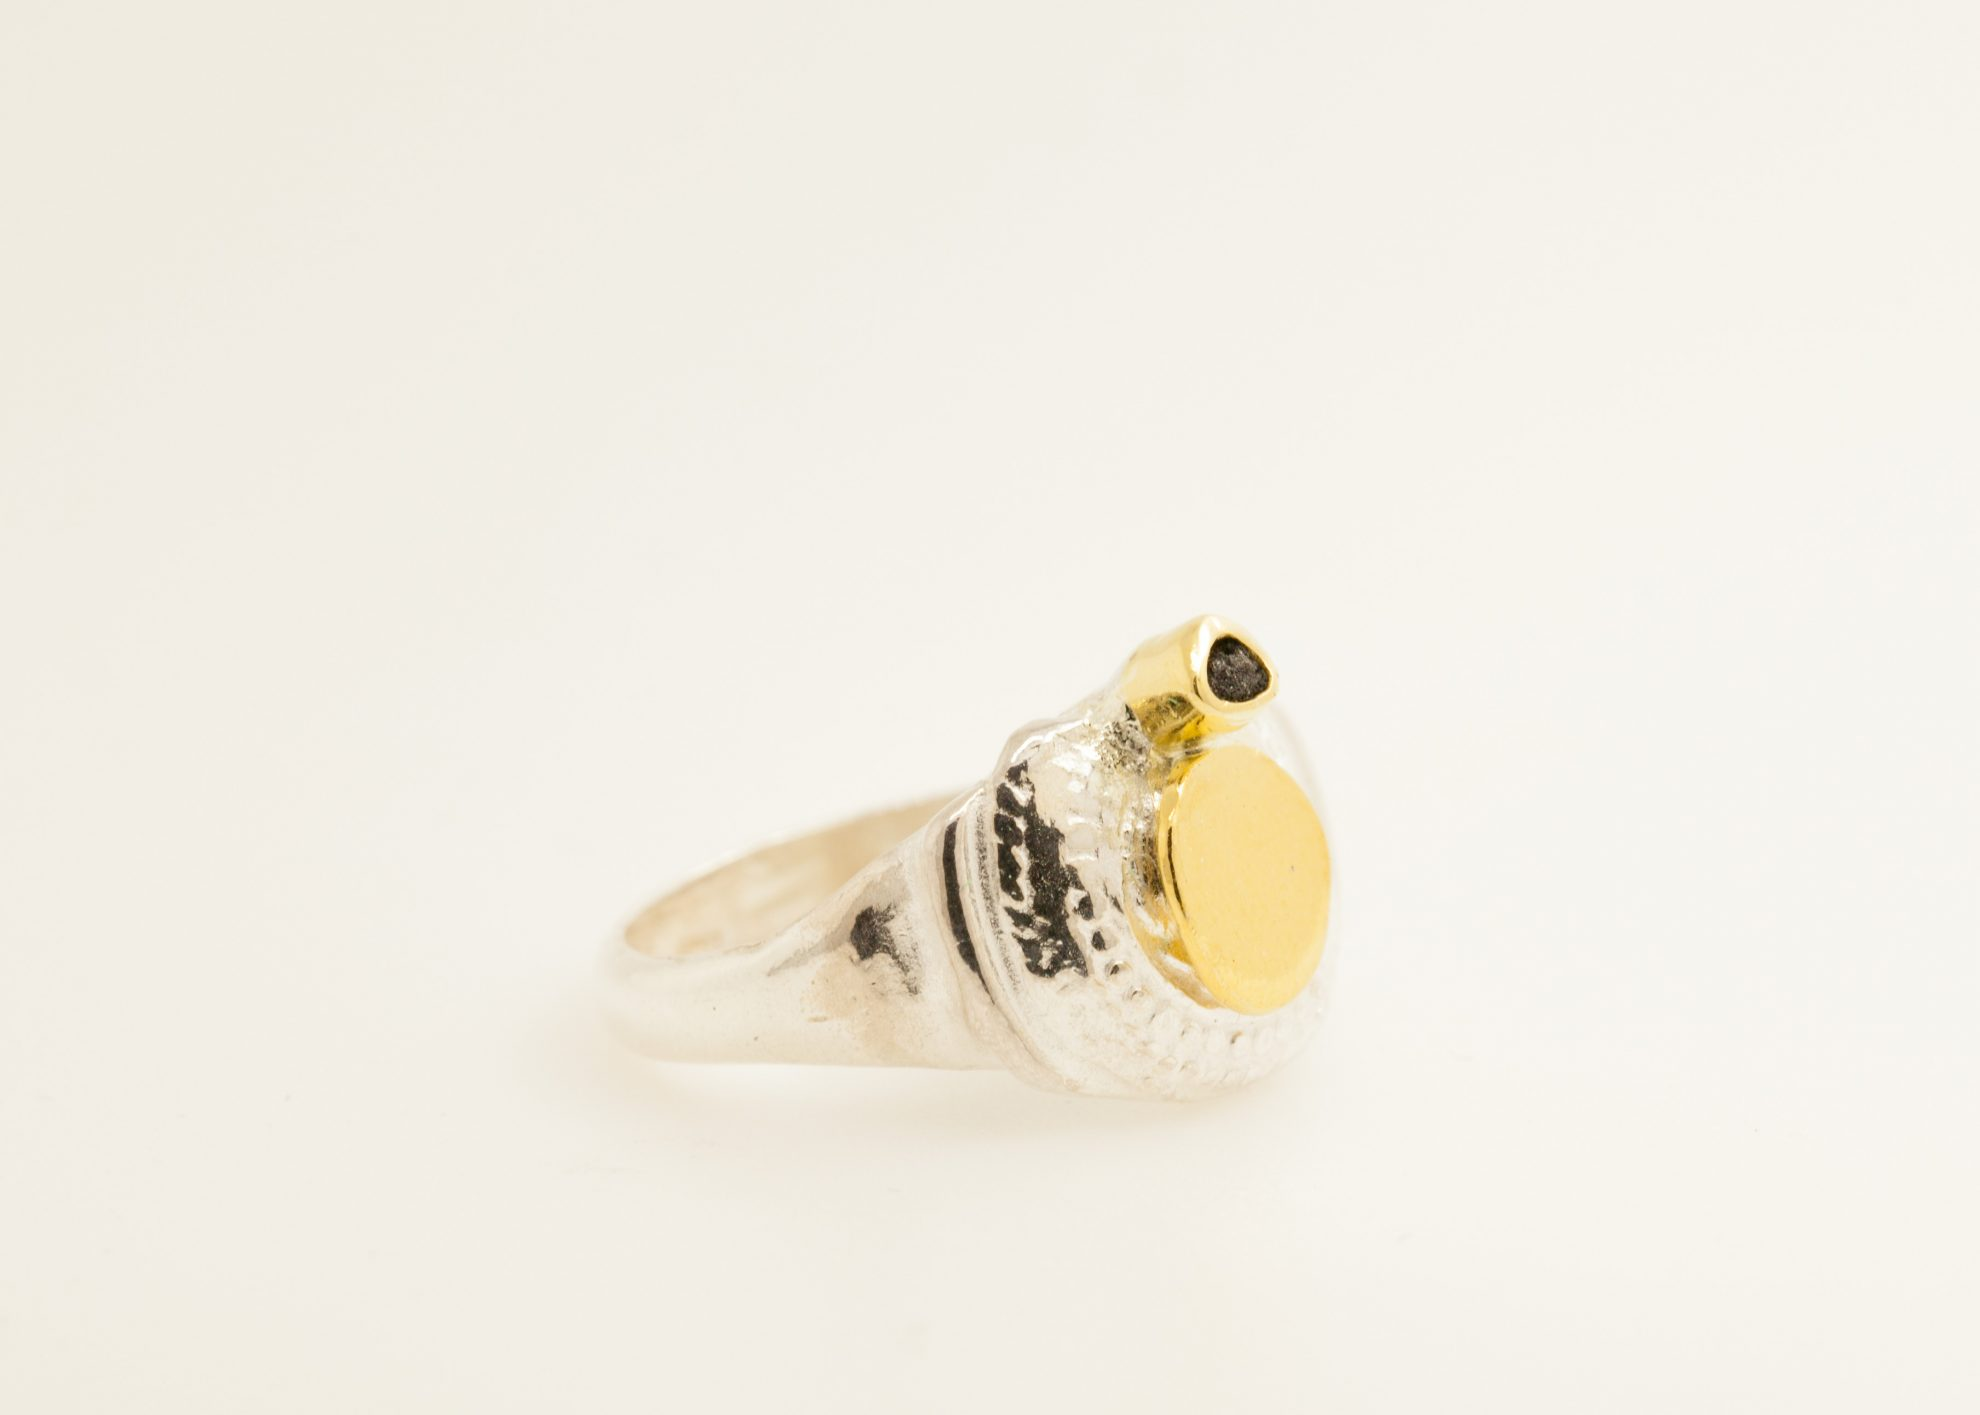 Sterling silver, 24kt gold, 22kt gold, raw black diamond